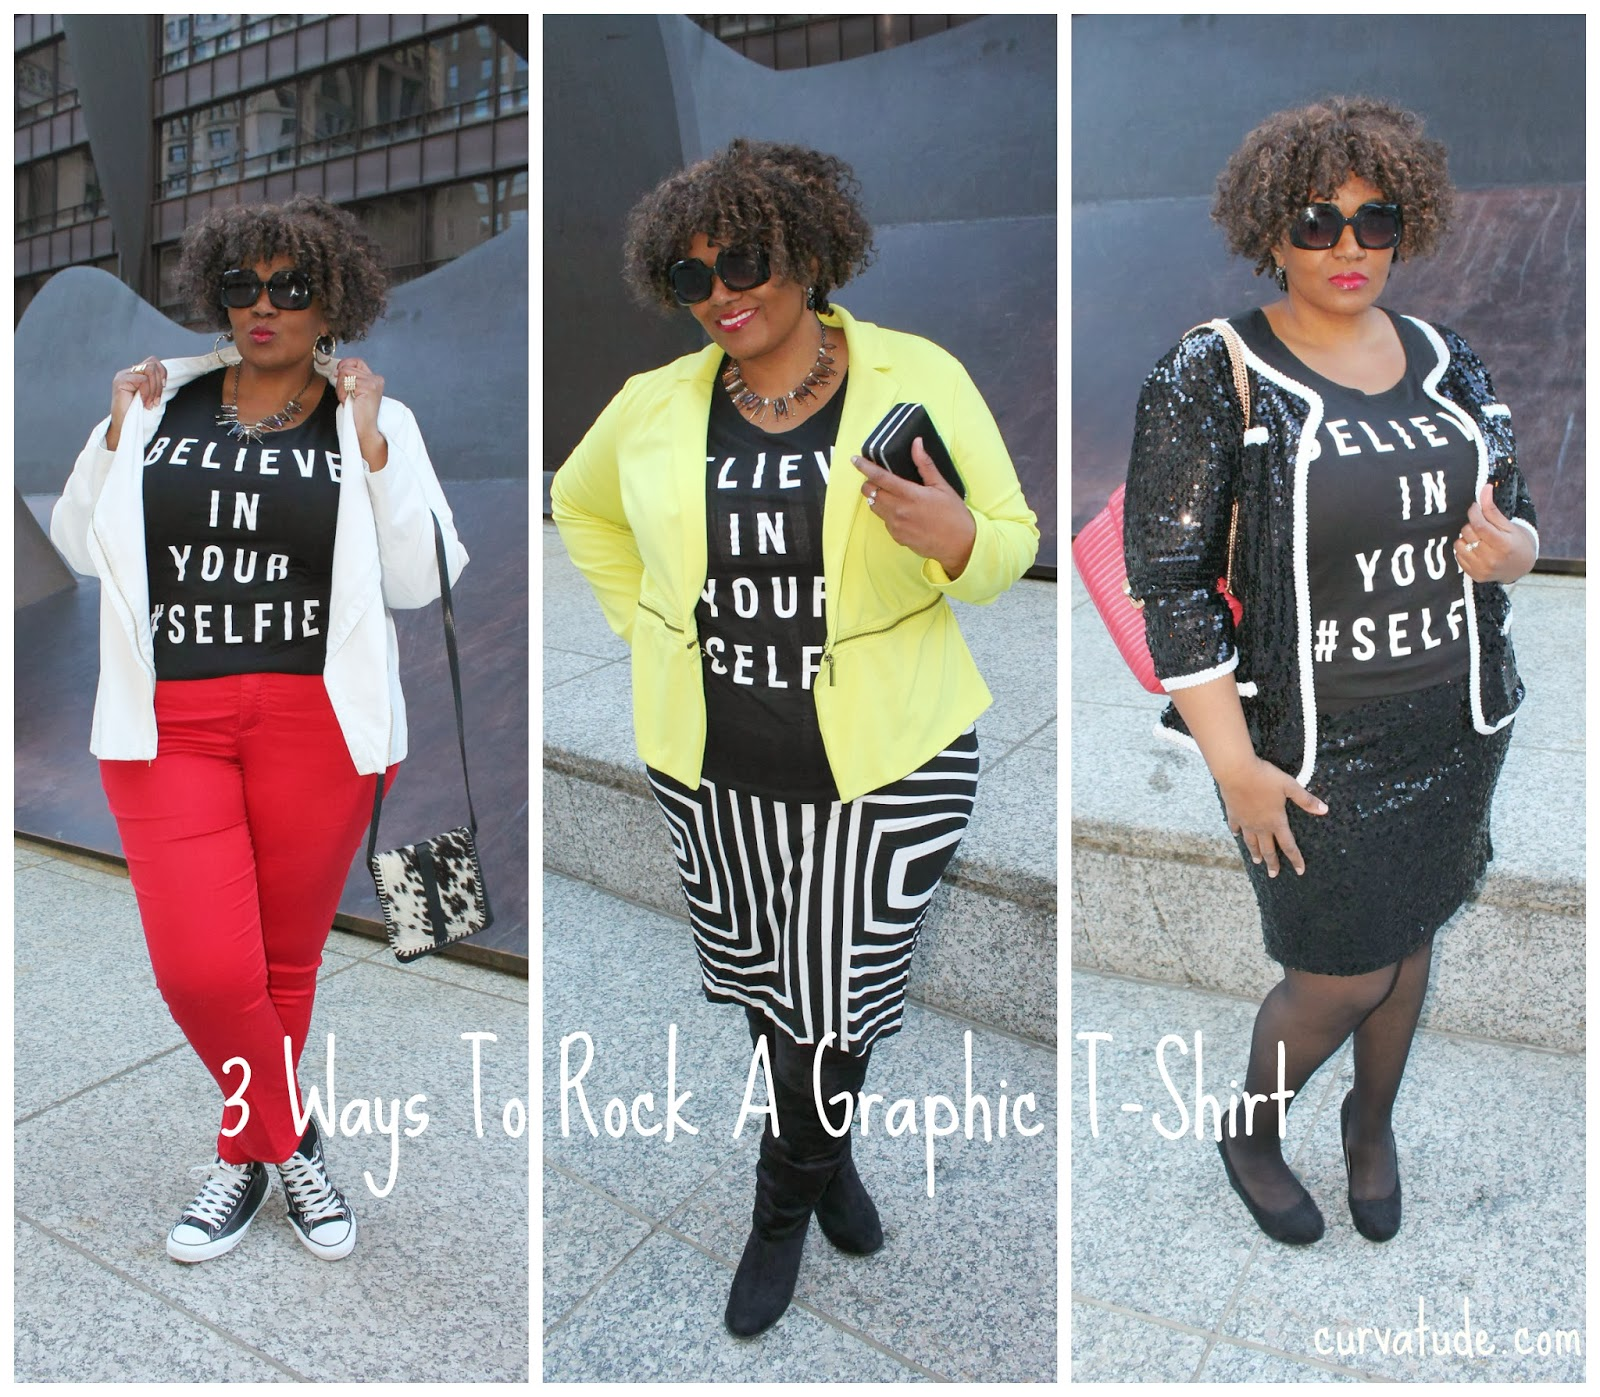 3 Ways to wear a graphic t shirt from casual to mixed prints to dressy